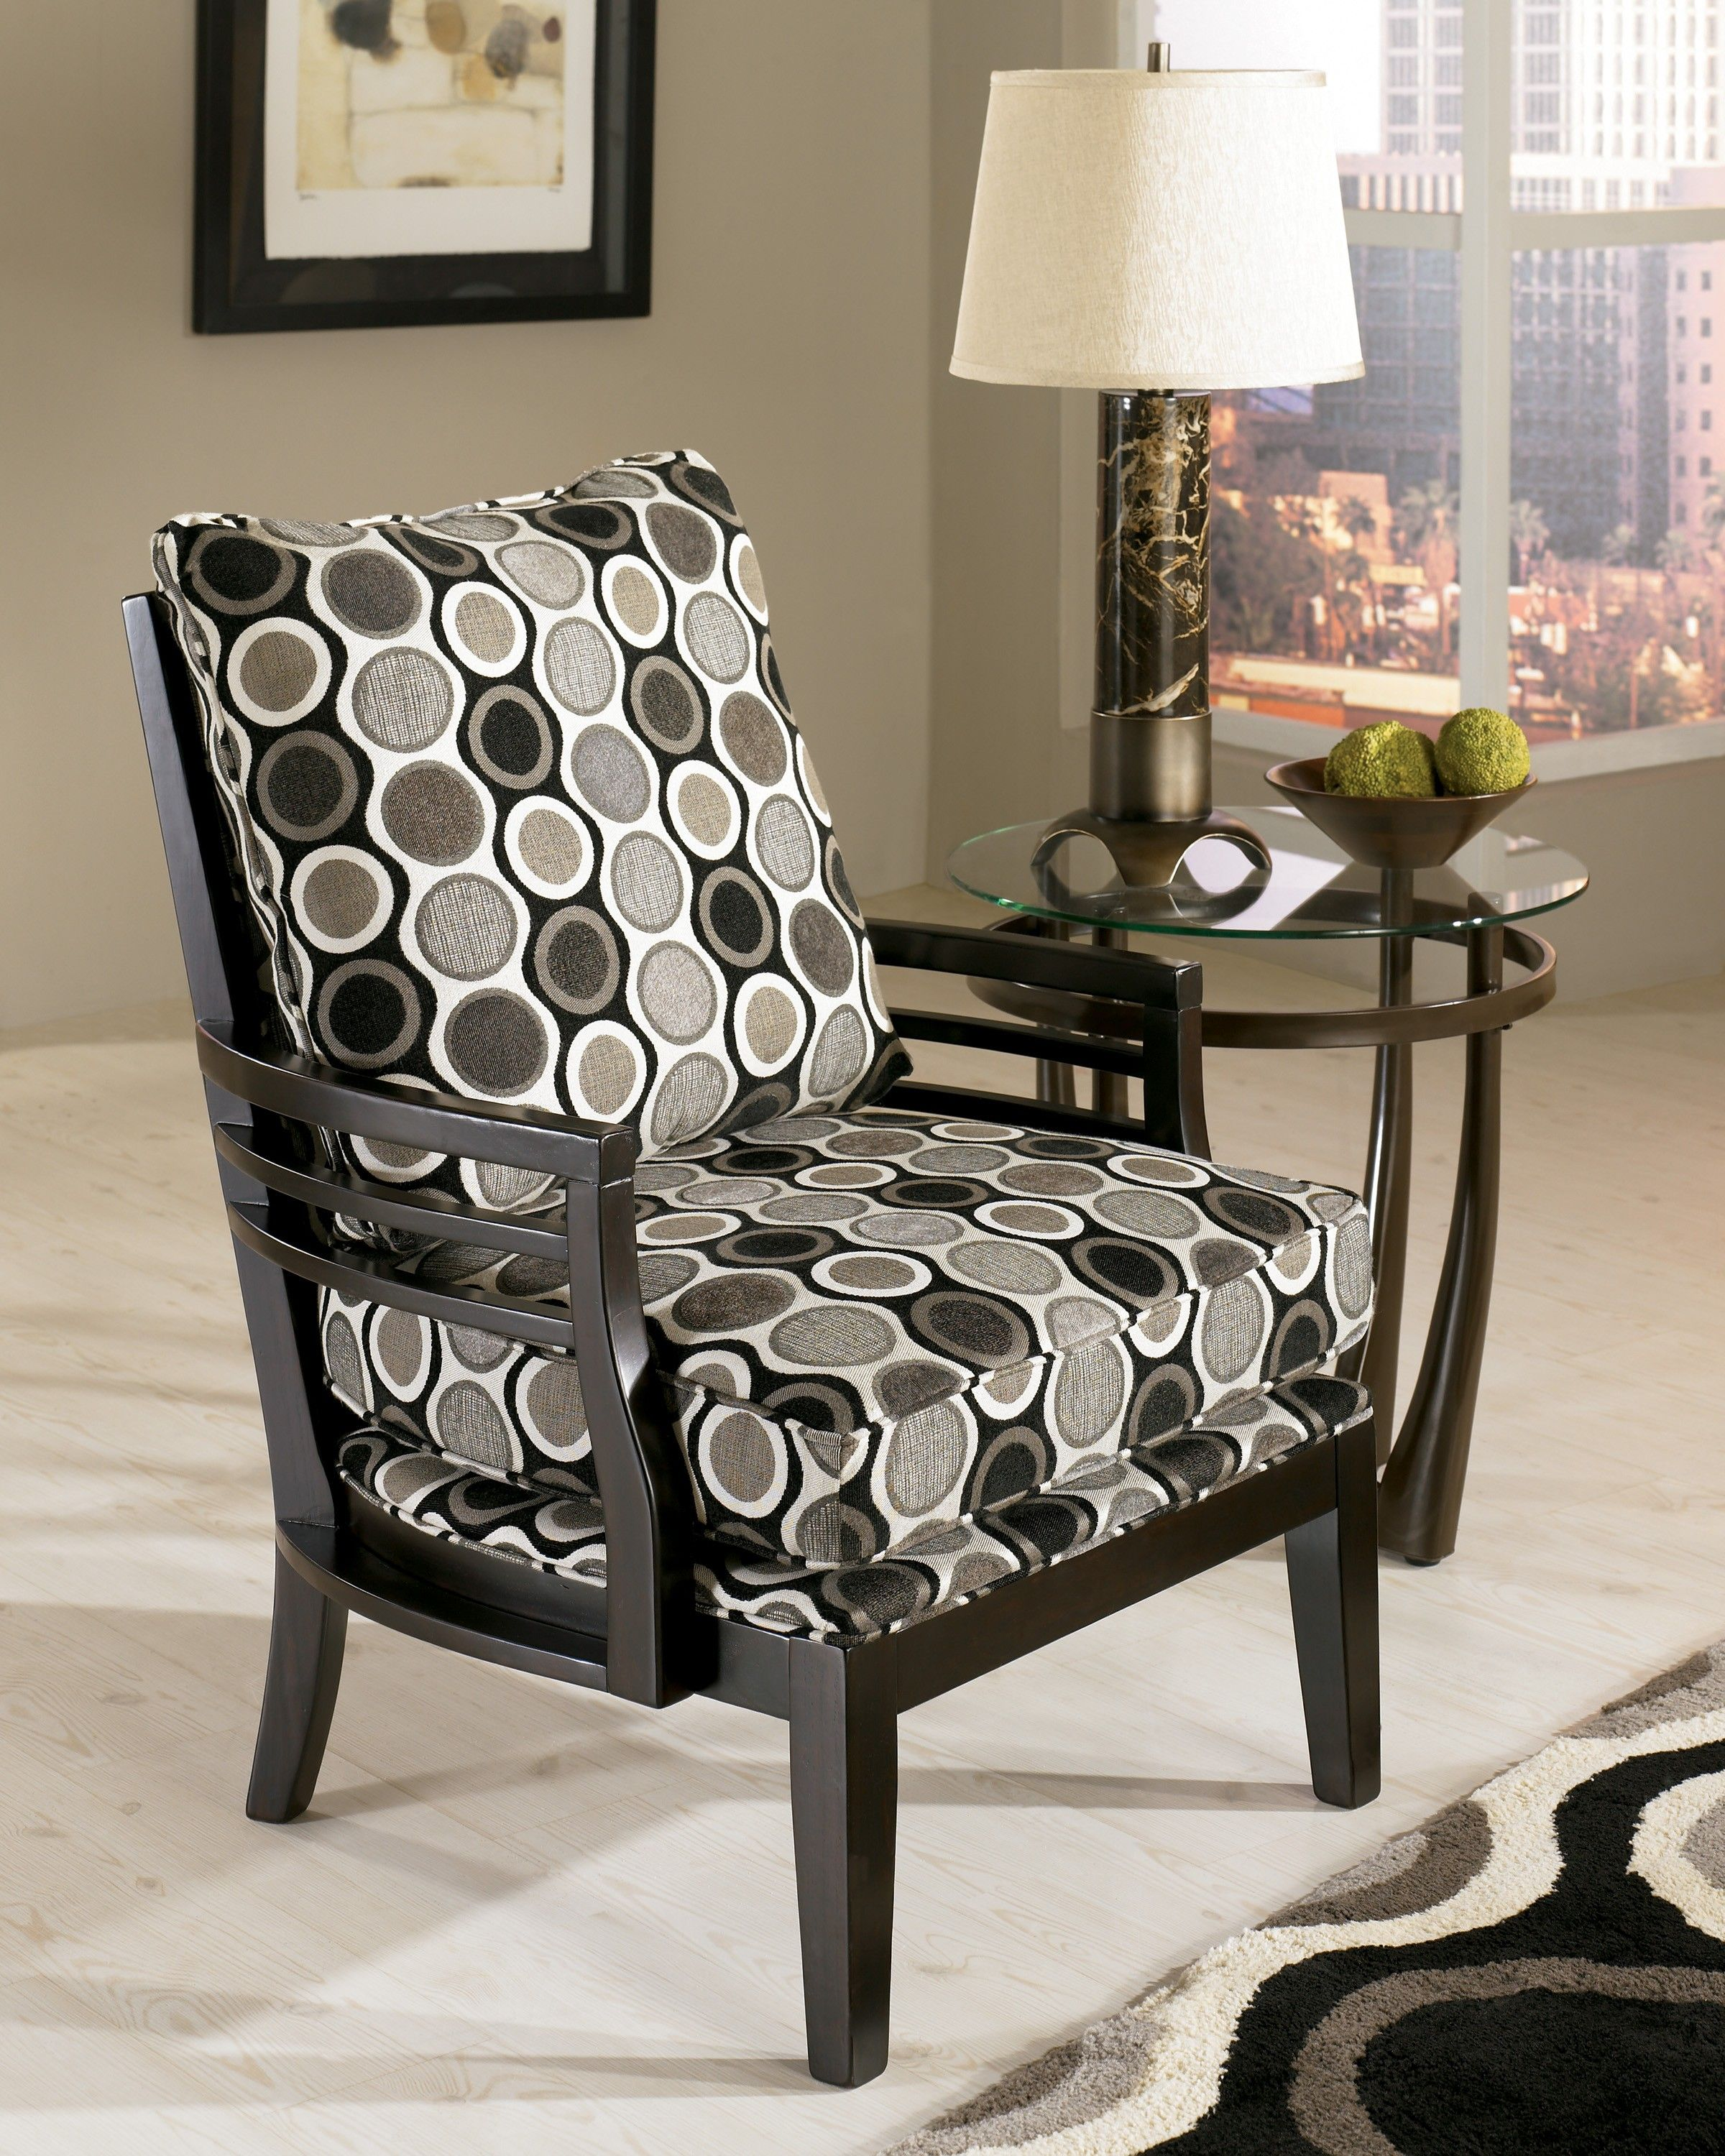 grey and white accent chair baby bouncer pink interior round black home motif matched with chrome table lamp on glass attractive for beautiful